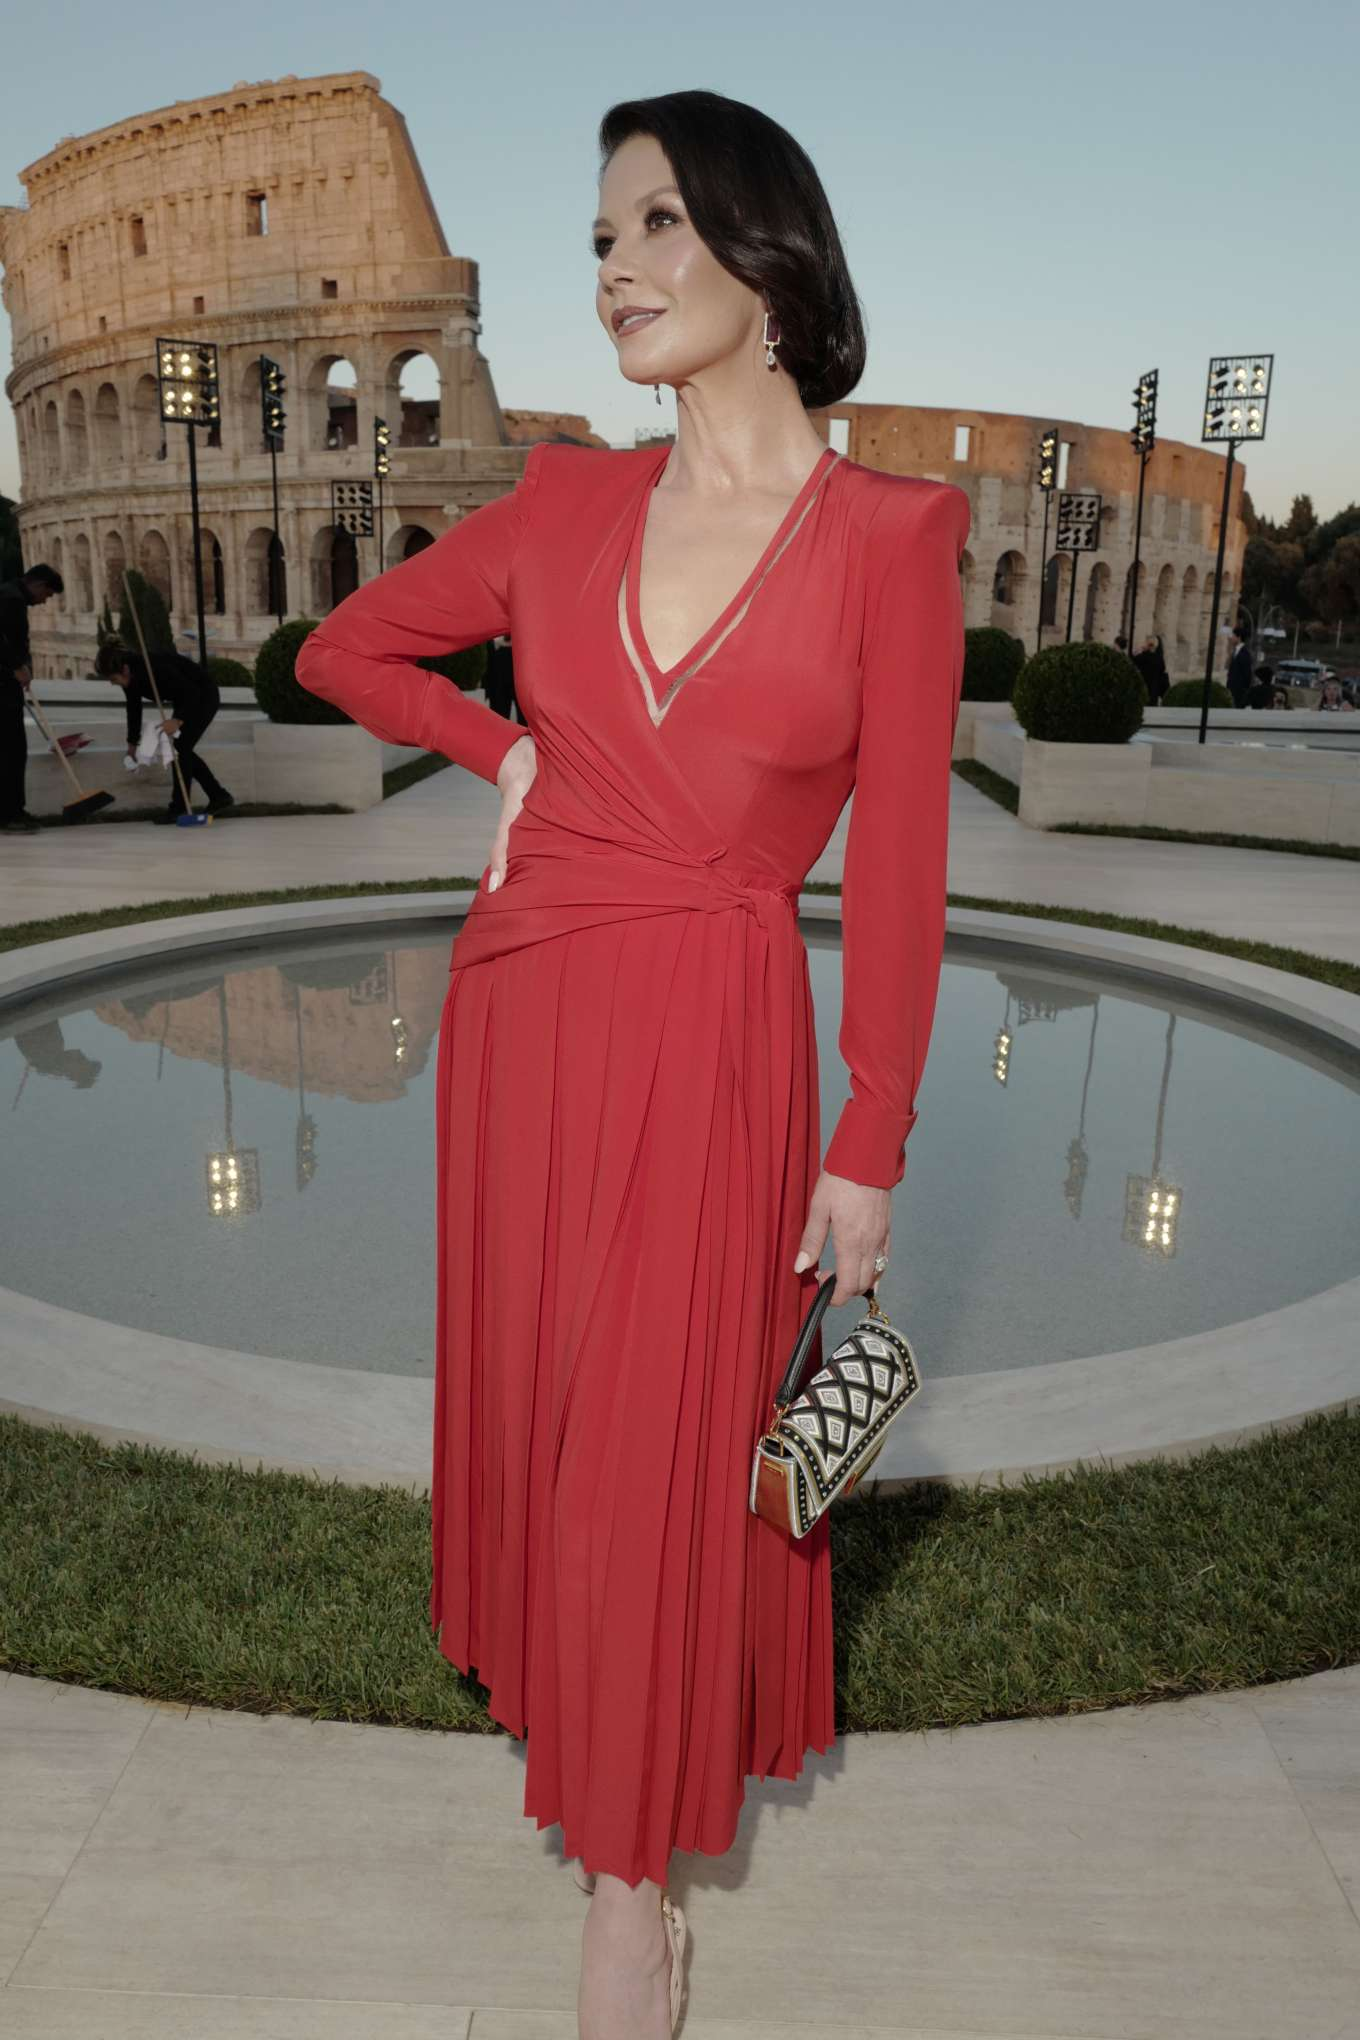 Catherine Zeta-Jones - Cocktail and Fendi Couture Fall Winter 2019-2020 in Rome